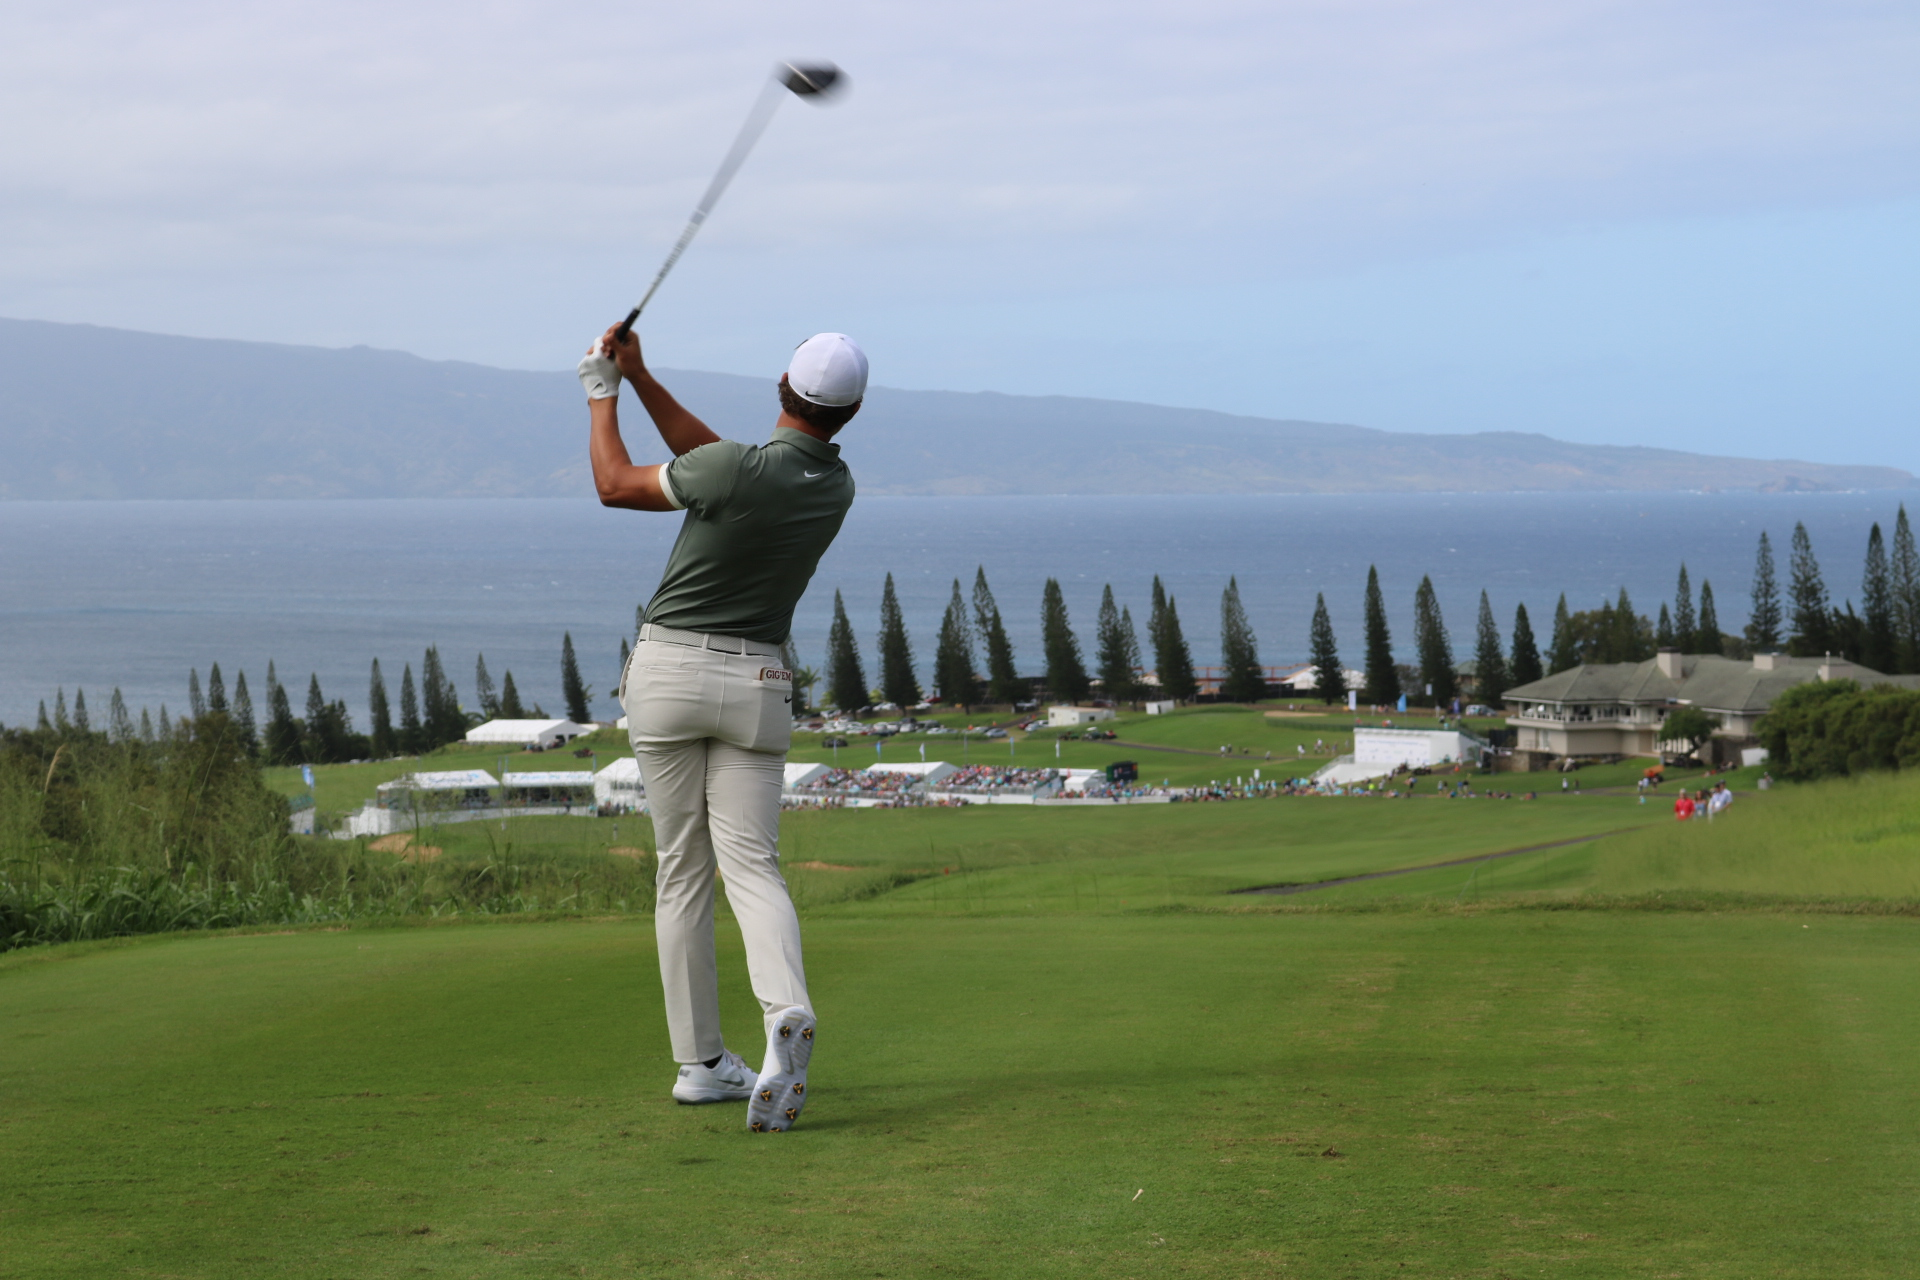 2021 PGA Golf Tournament Returns to Kapaluaʻs Plantation Course in January with Safety Protocols